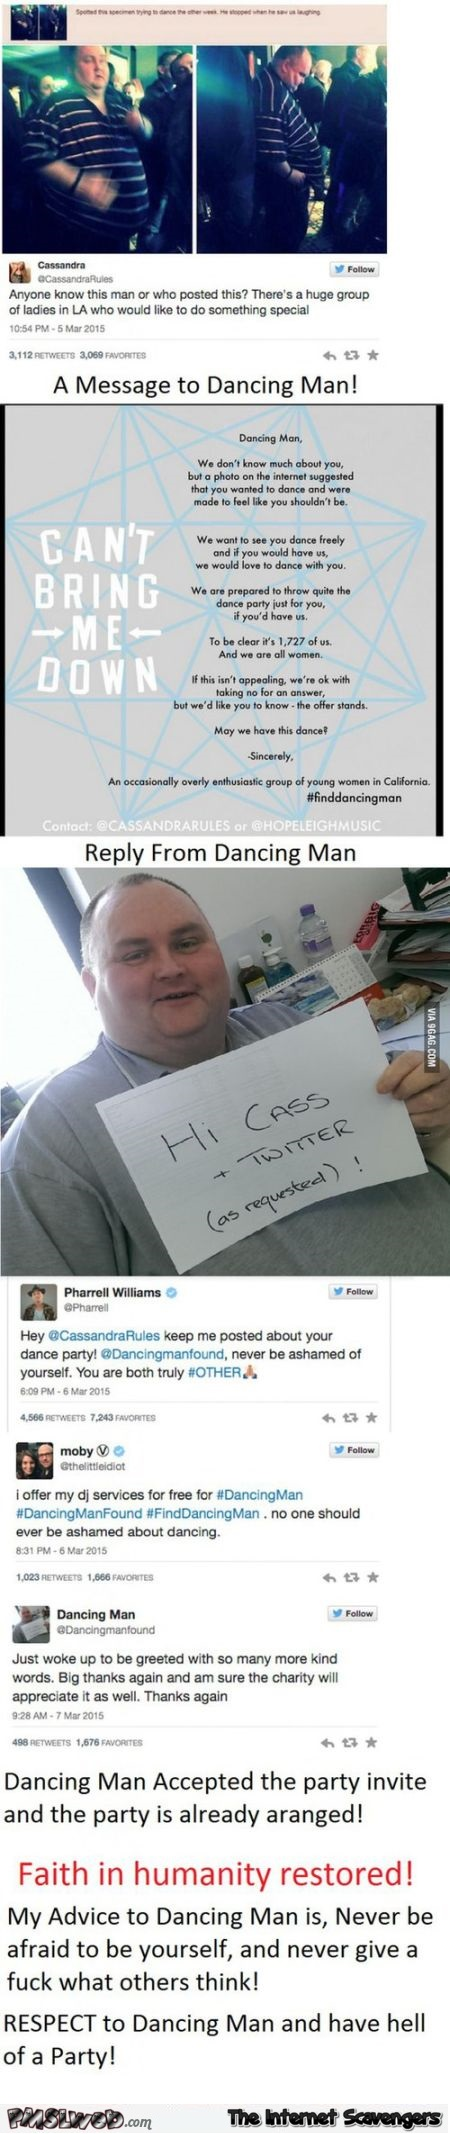 The dancing man faith in humanity restored @PMSLweb.com